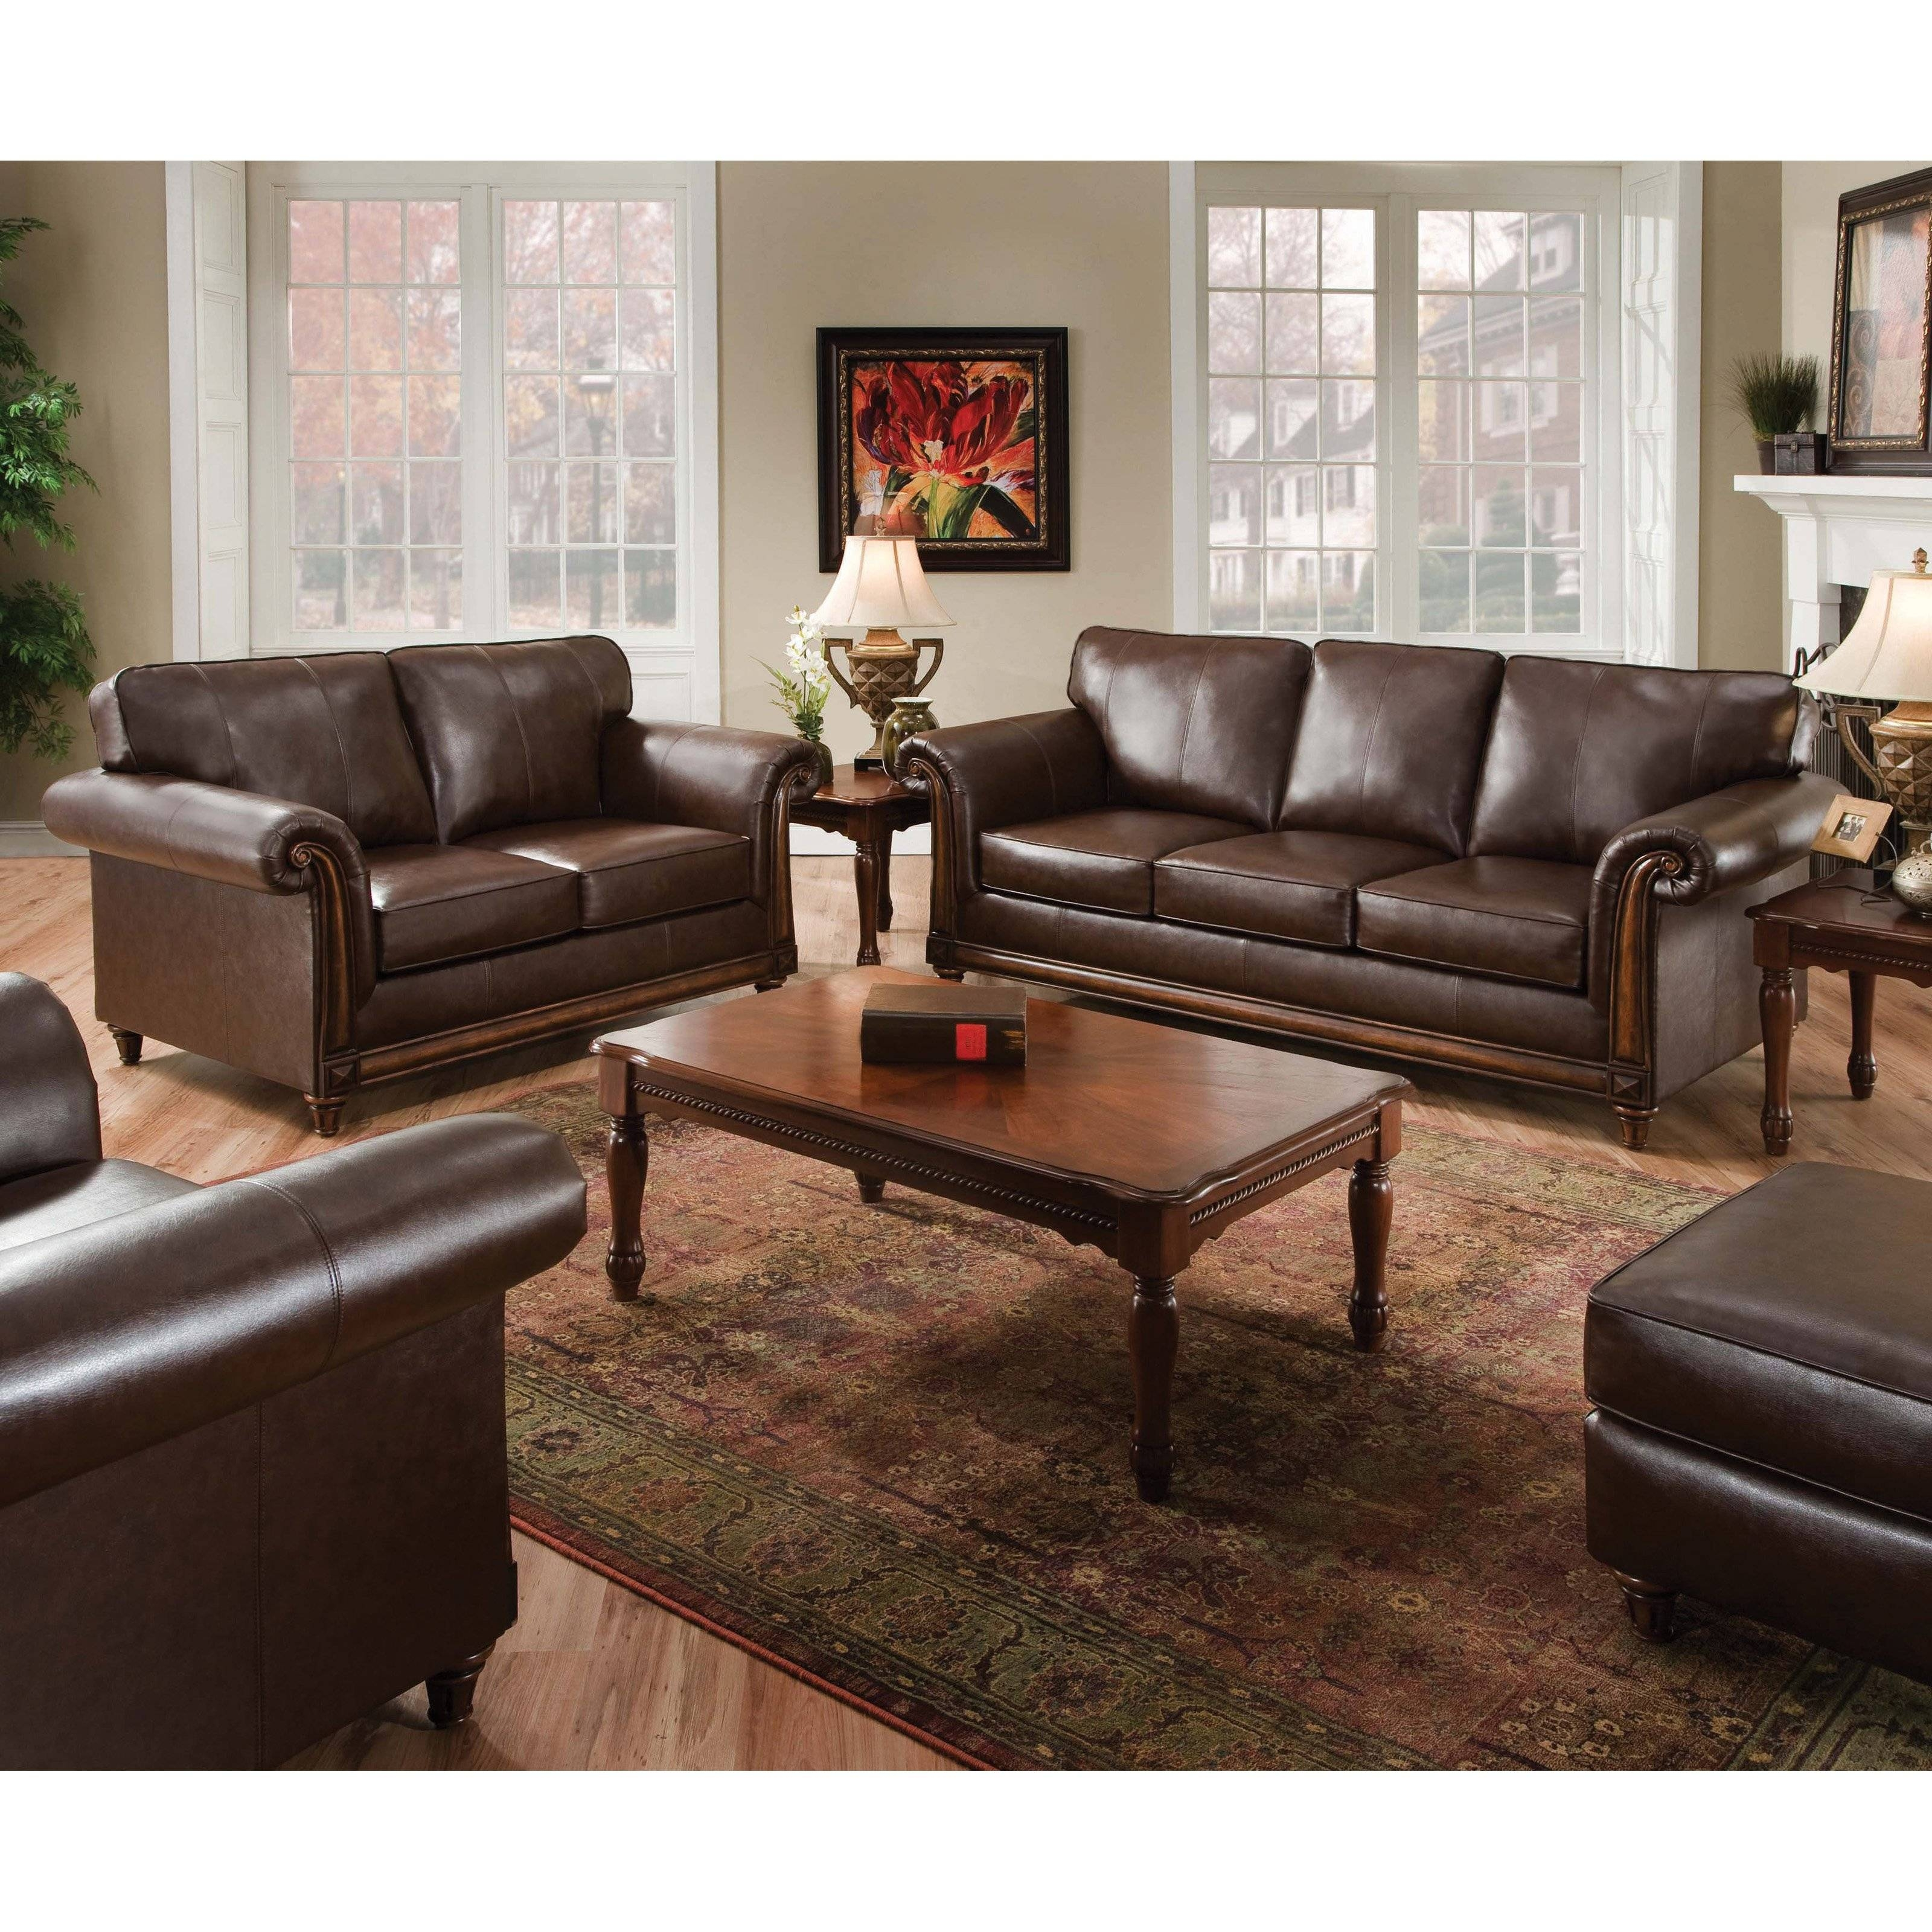 Furniture: Simmons Sofa For Comfortable Seating — Threestems Inside Simmons Leather Sofas And Loveseats (View 9 of 15)